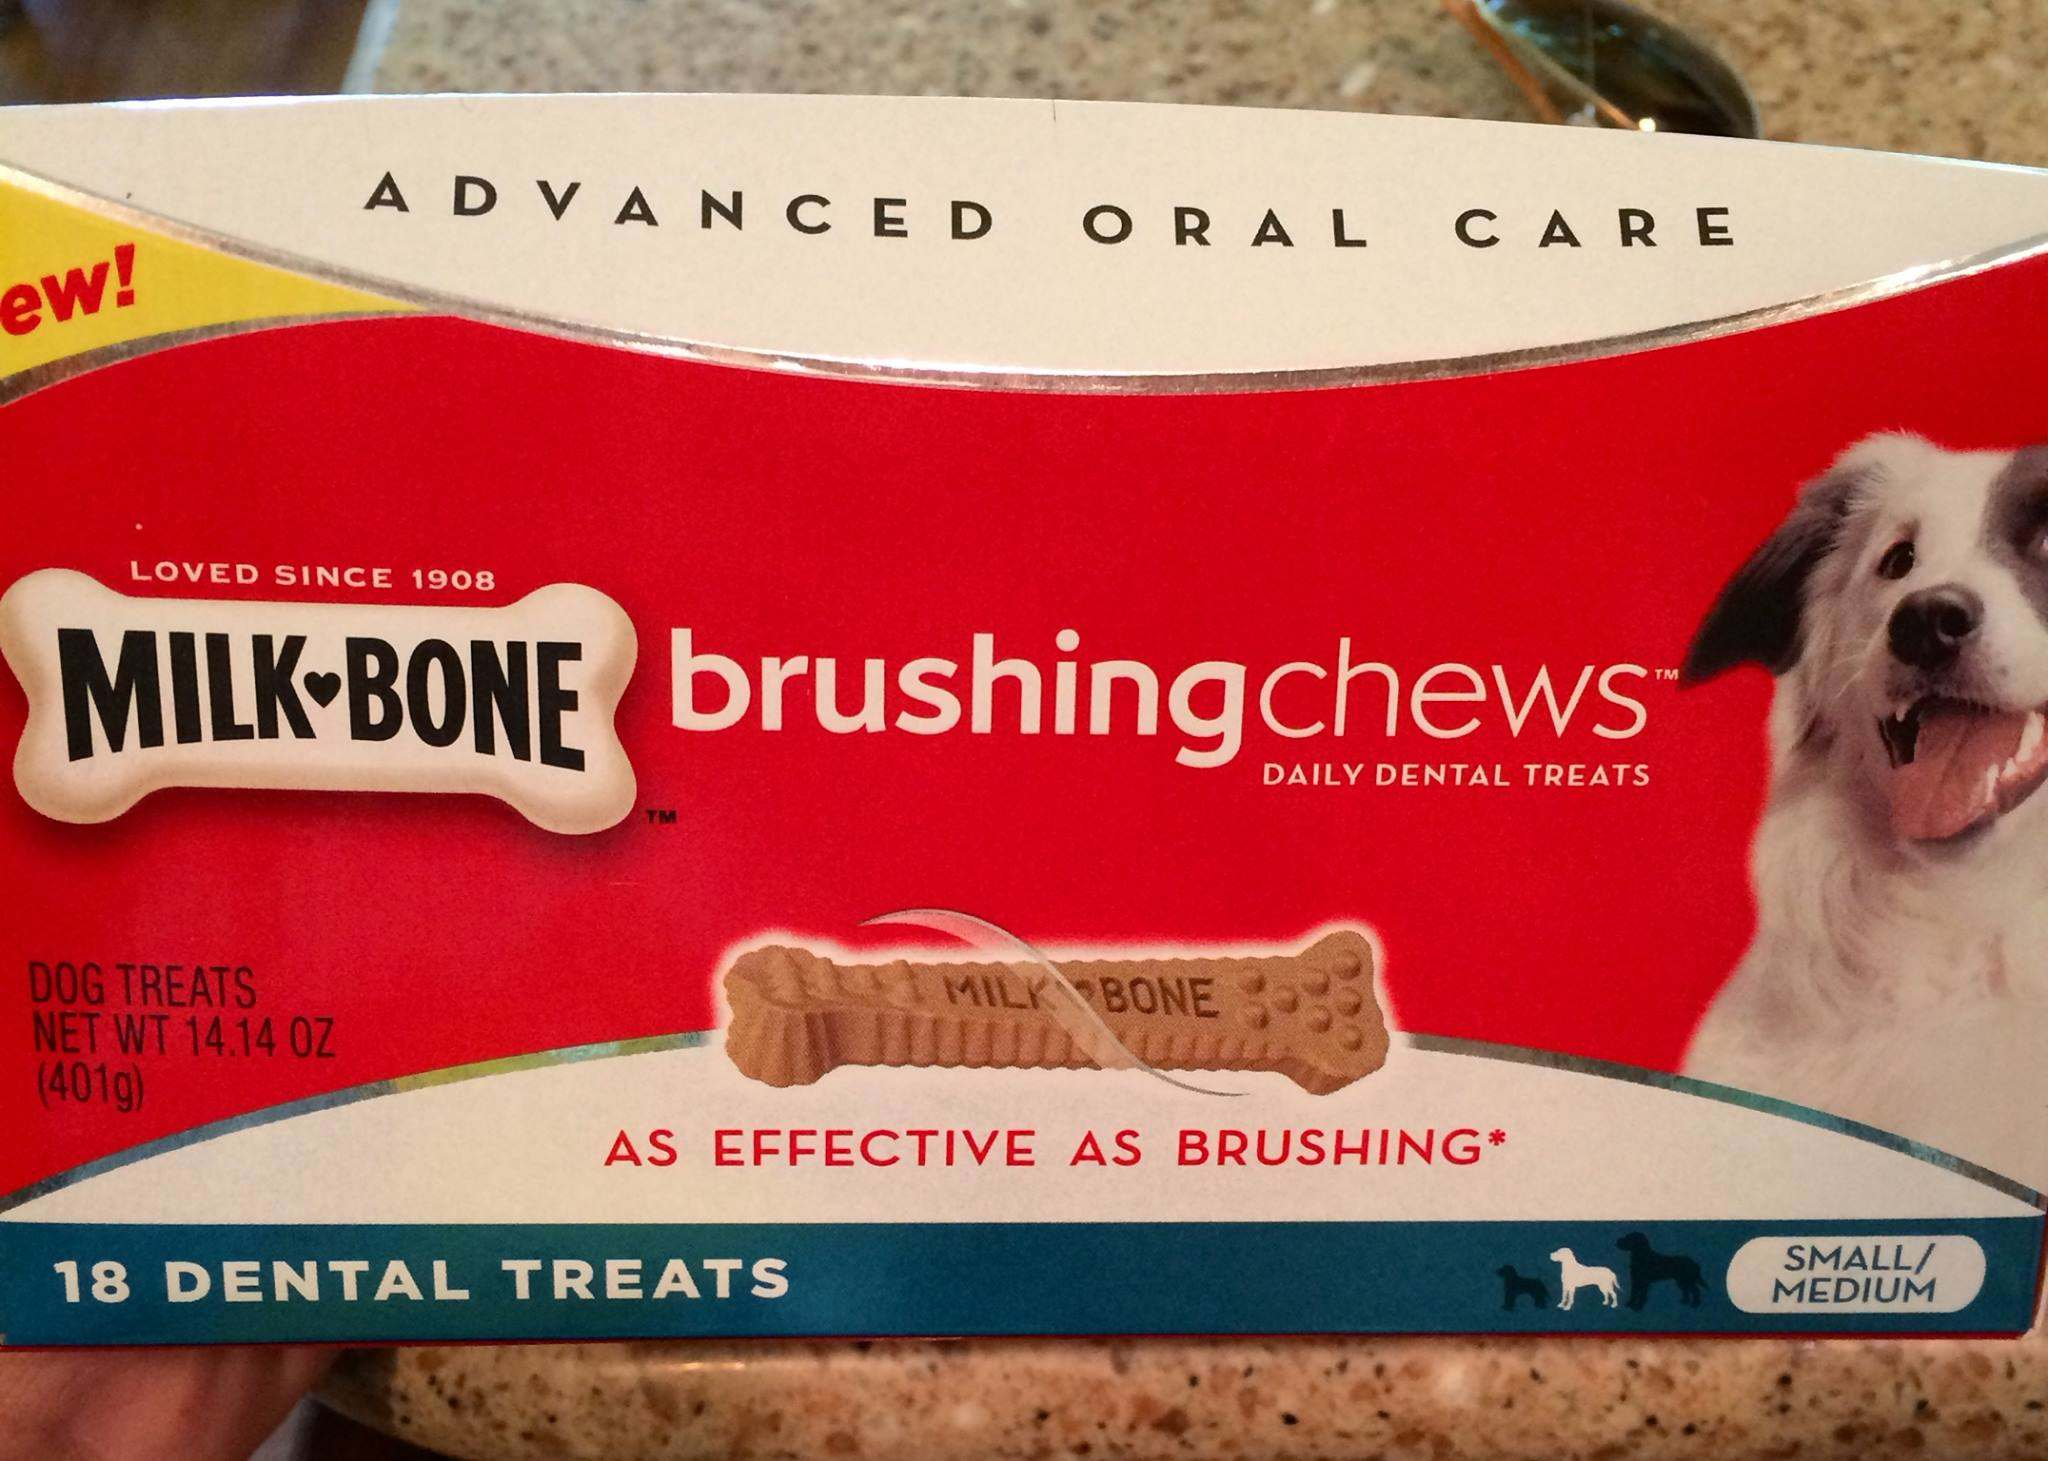 Milk-Bone Brushing Chews Can Kill Your